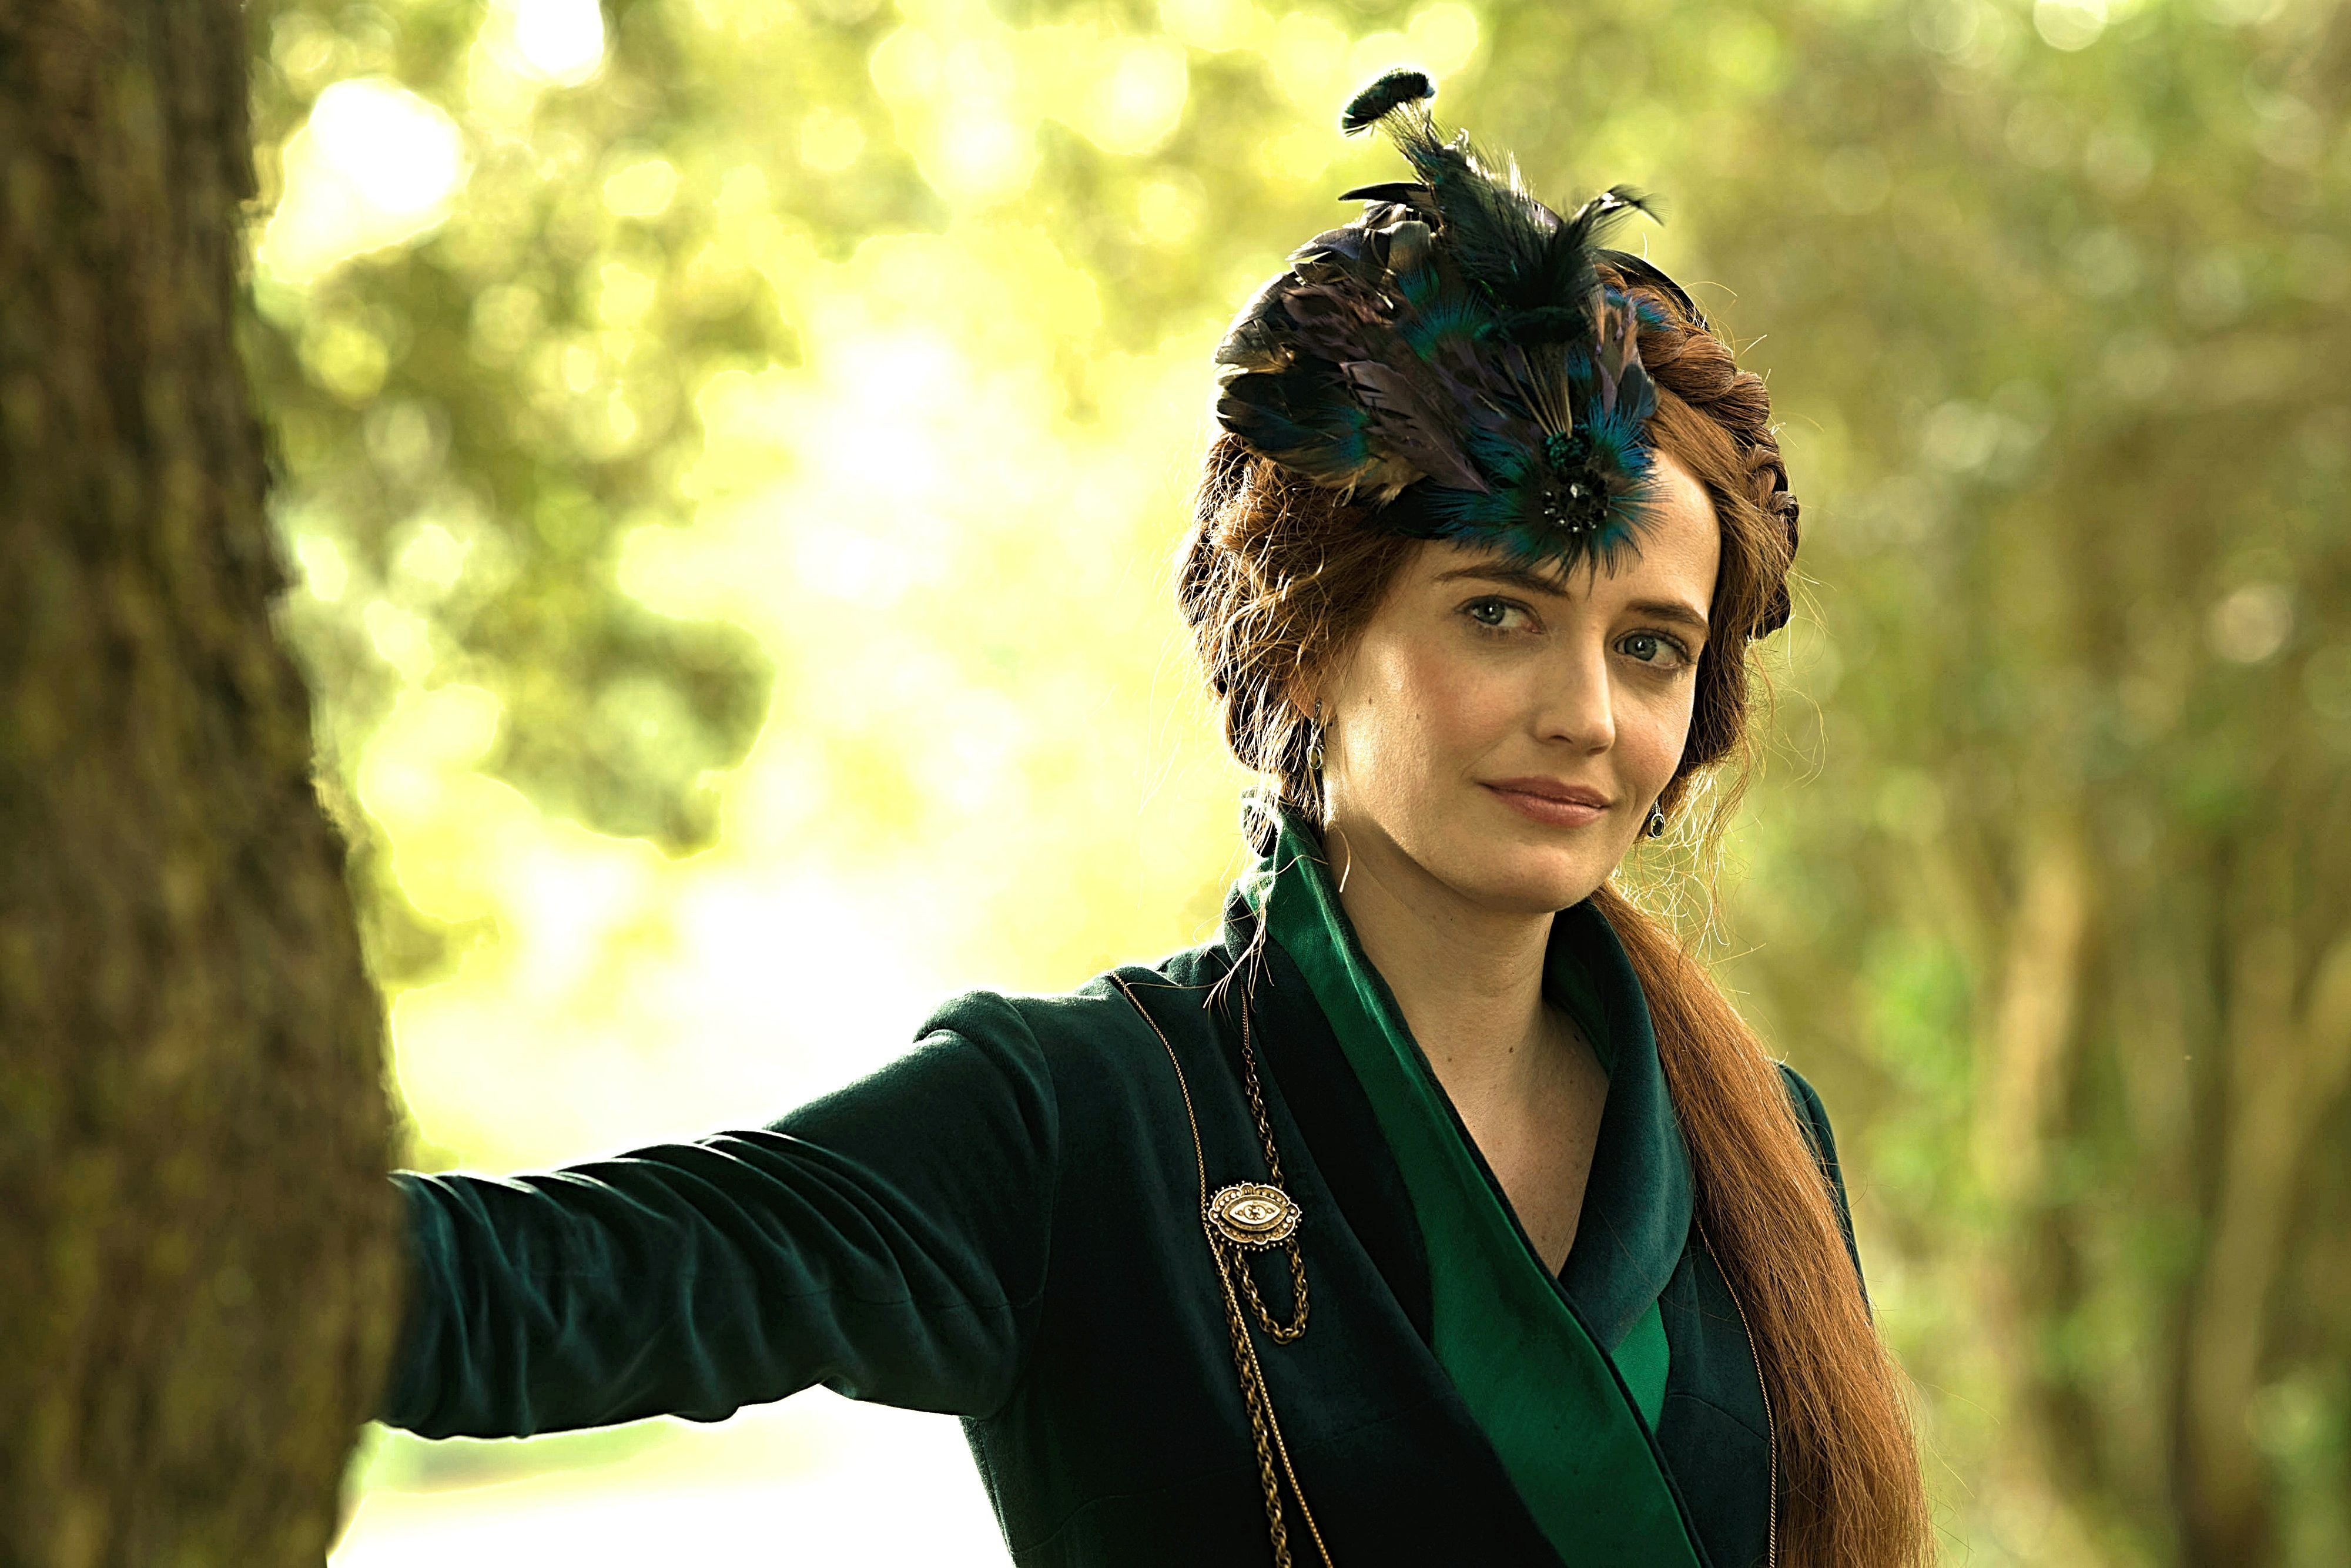 First look at Penny Dreadful's Eva Green starring in BBC's TV